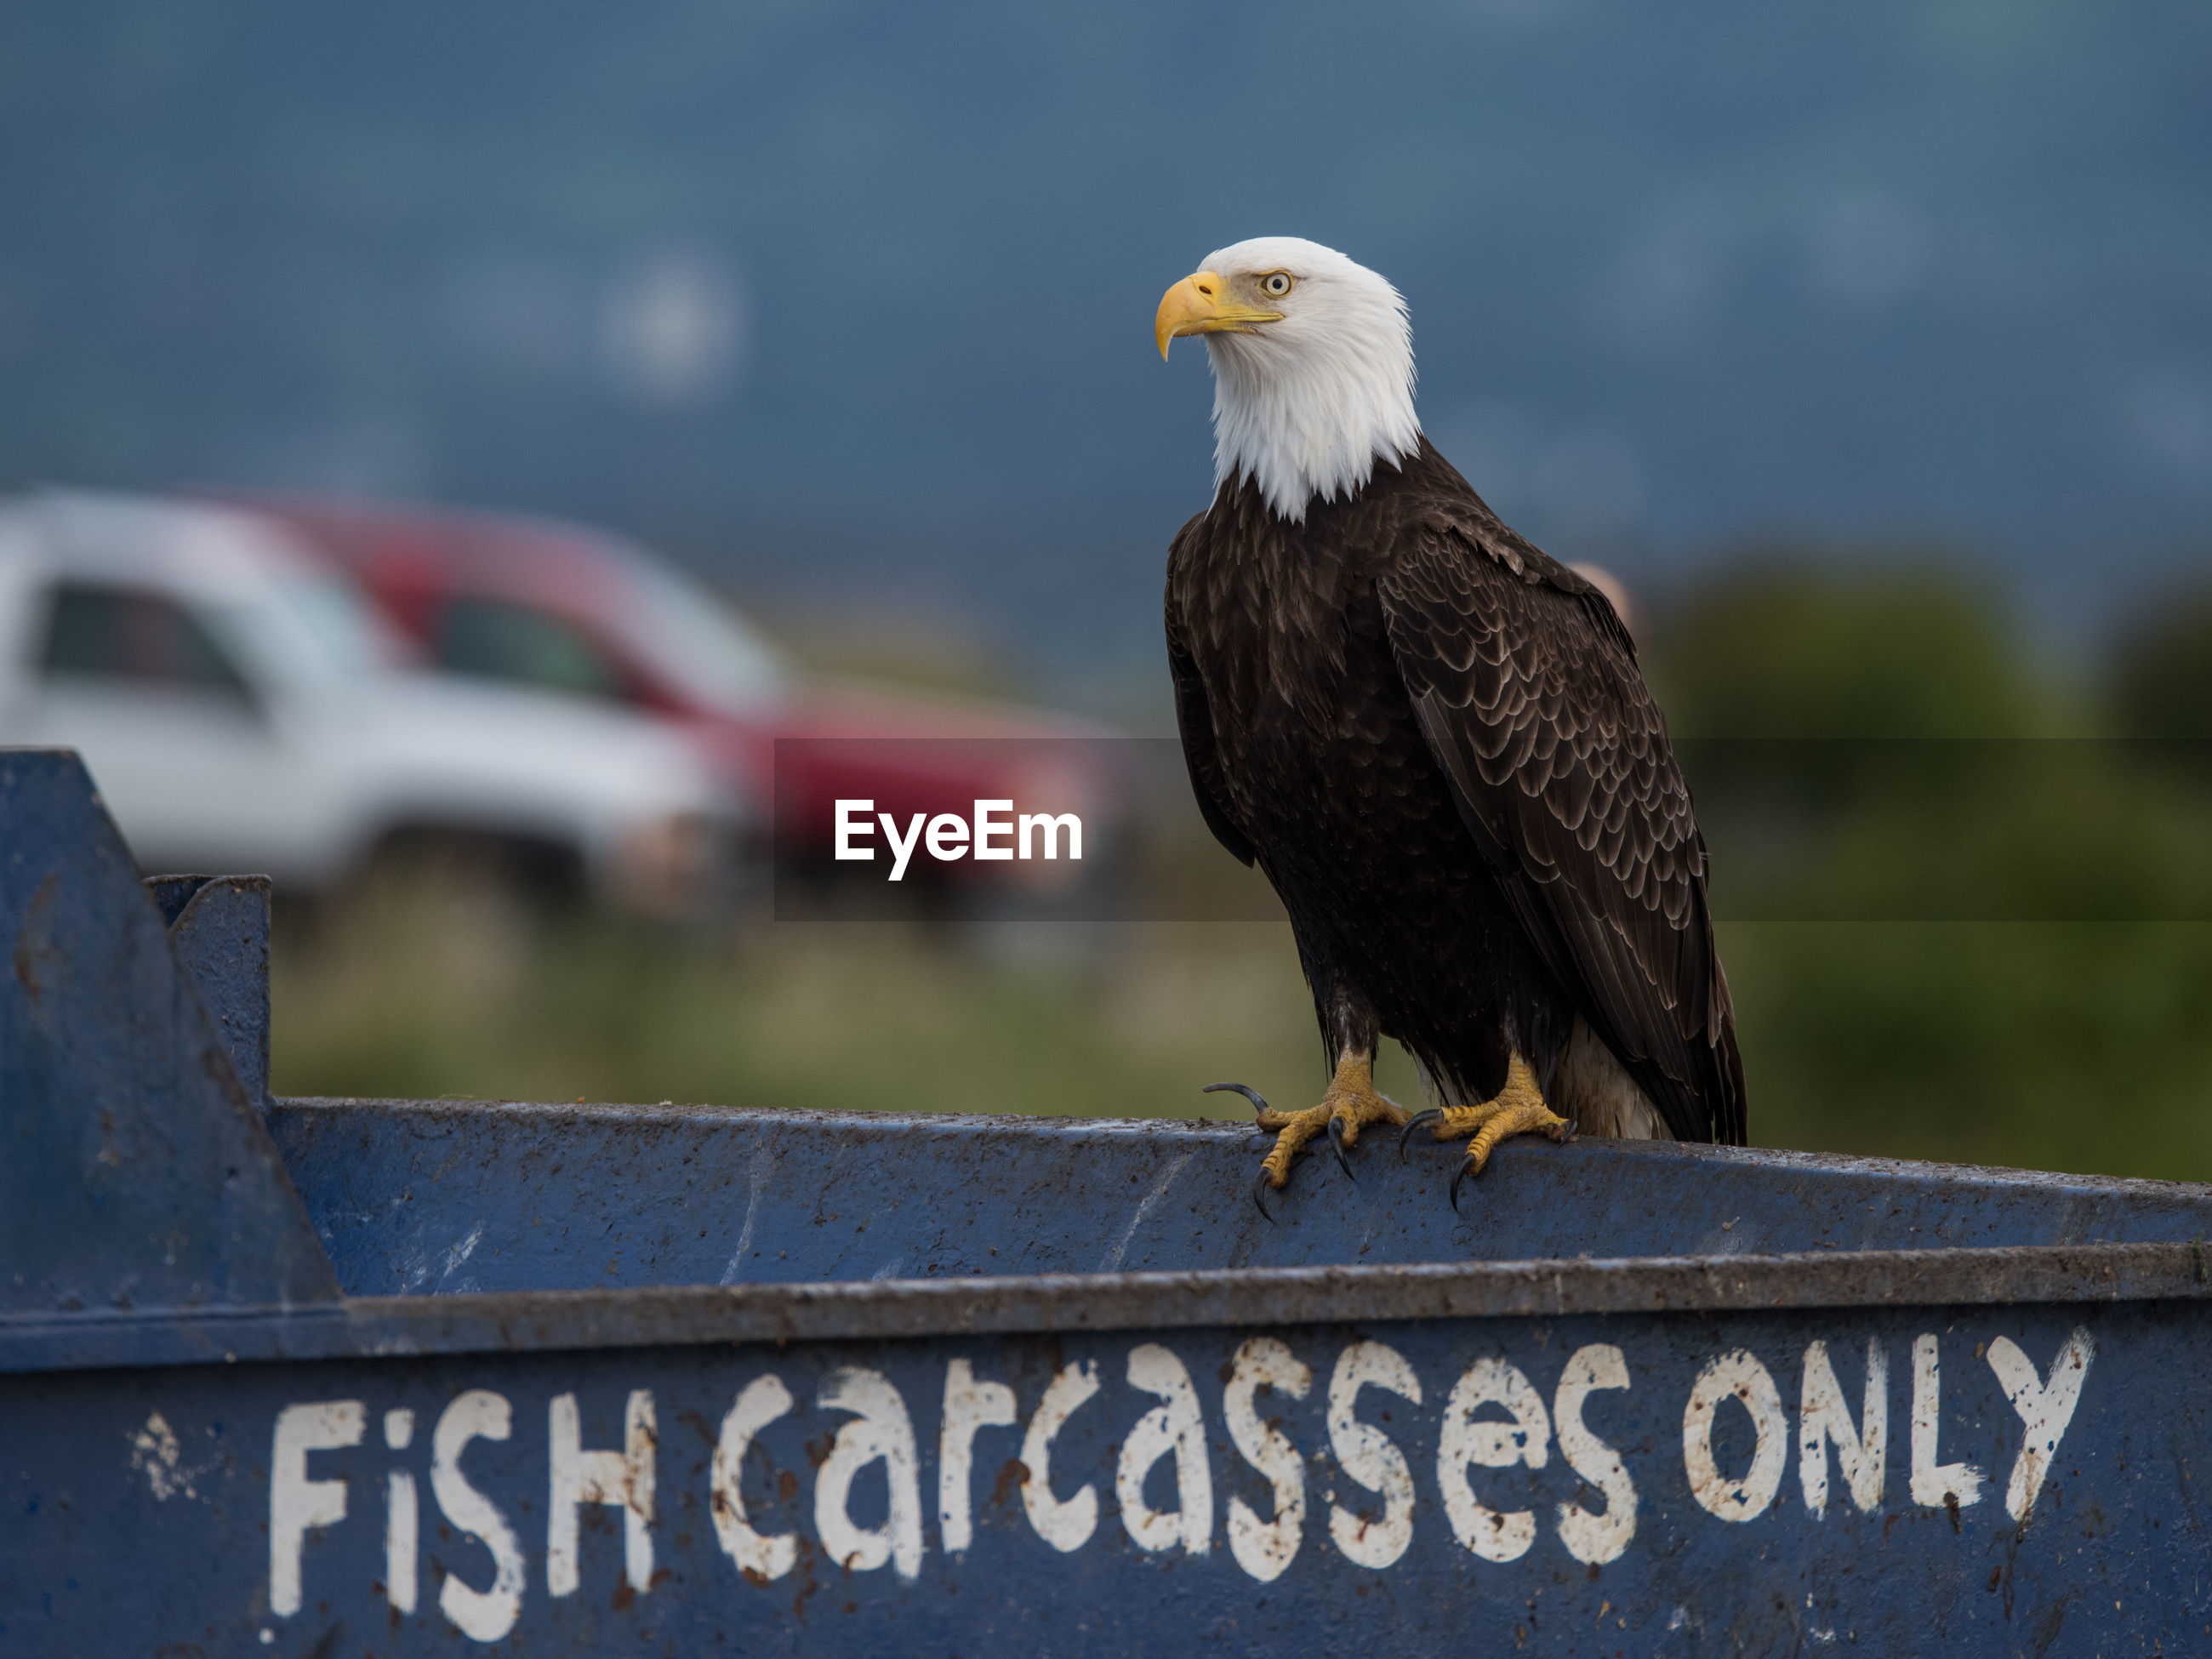 Bald eagle perching on metal with text